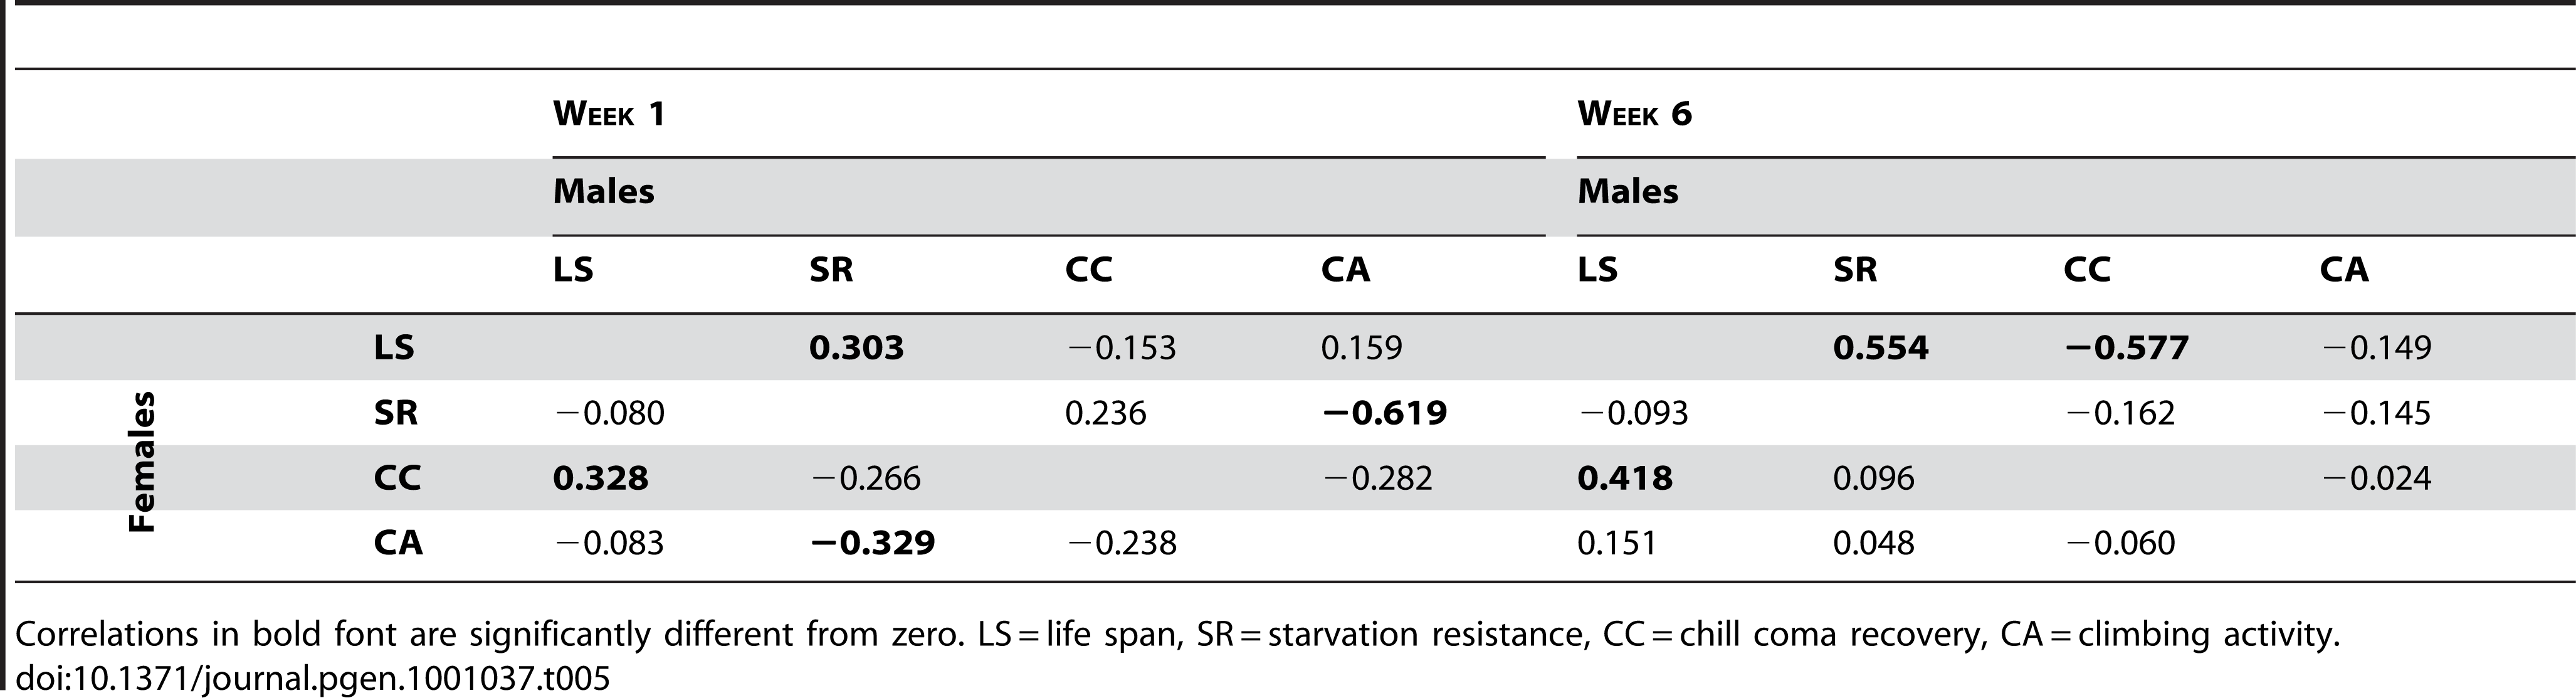 Mutational correlations among life span, starvation resistance, chill coma recovery, and climbing ability.